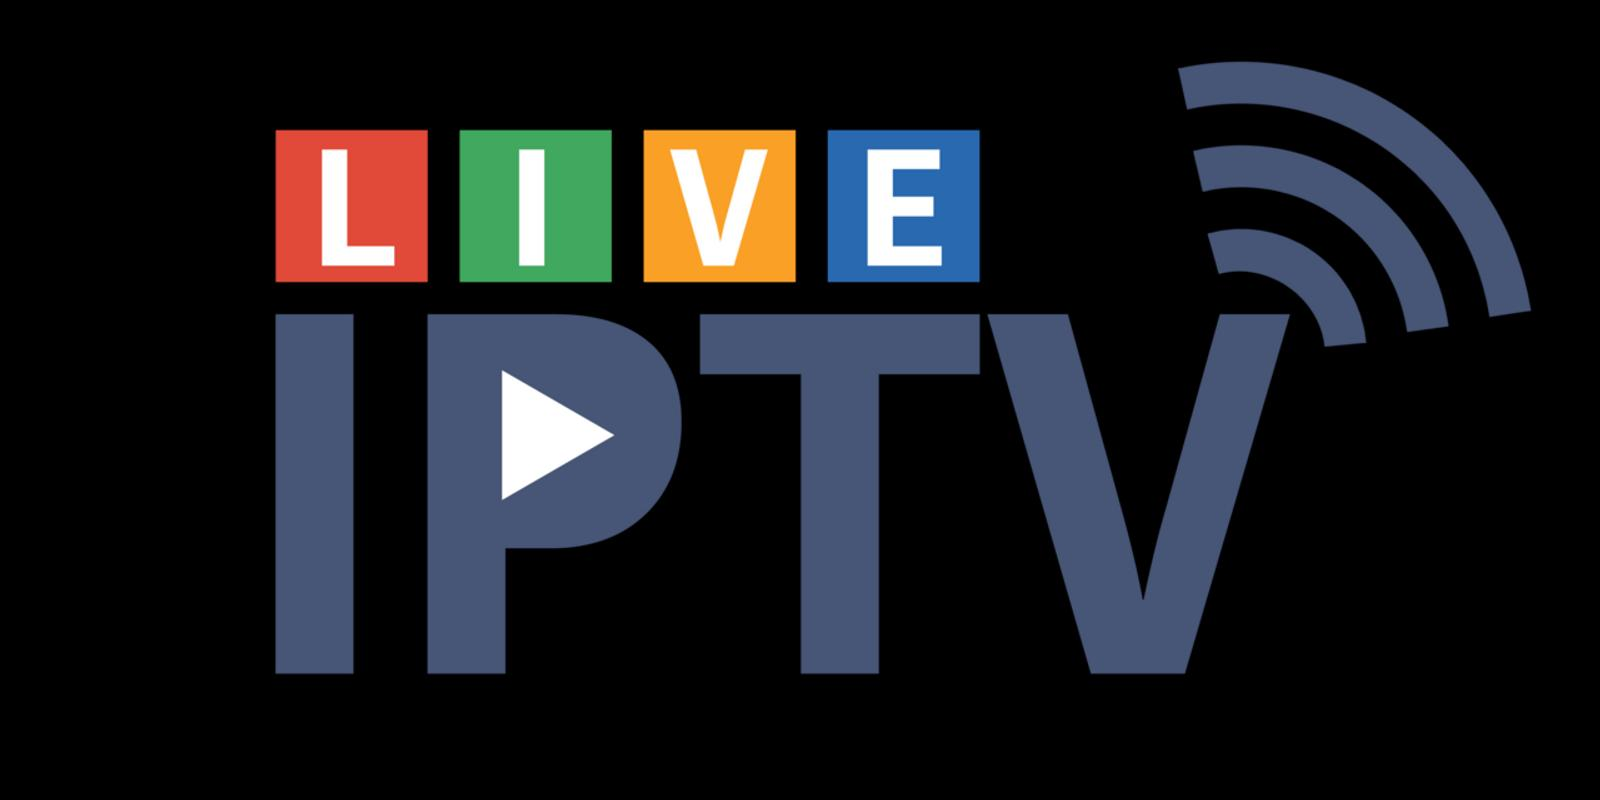 Live Iptv Br Tv Box For Android Apk Download